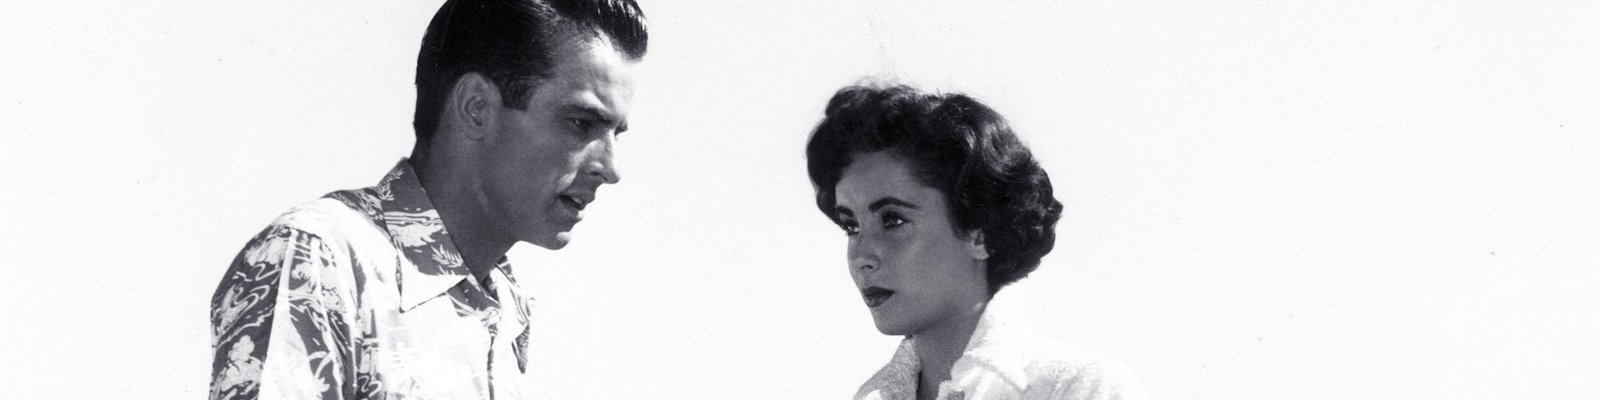 Montgomery Clift and Elizabeth Taylor look into each other's eyes